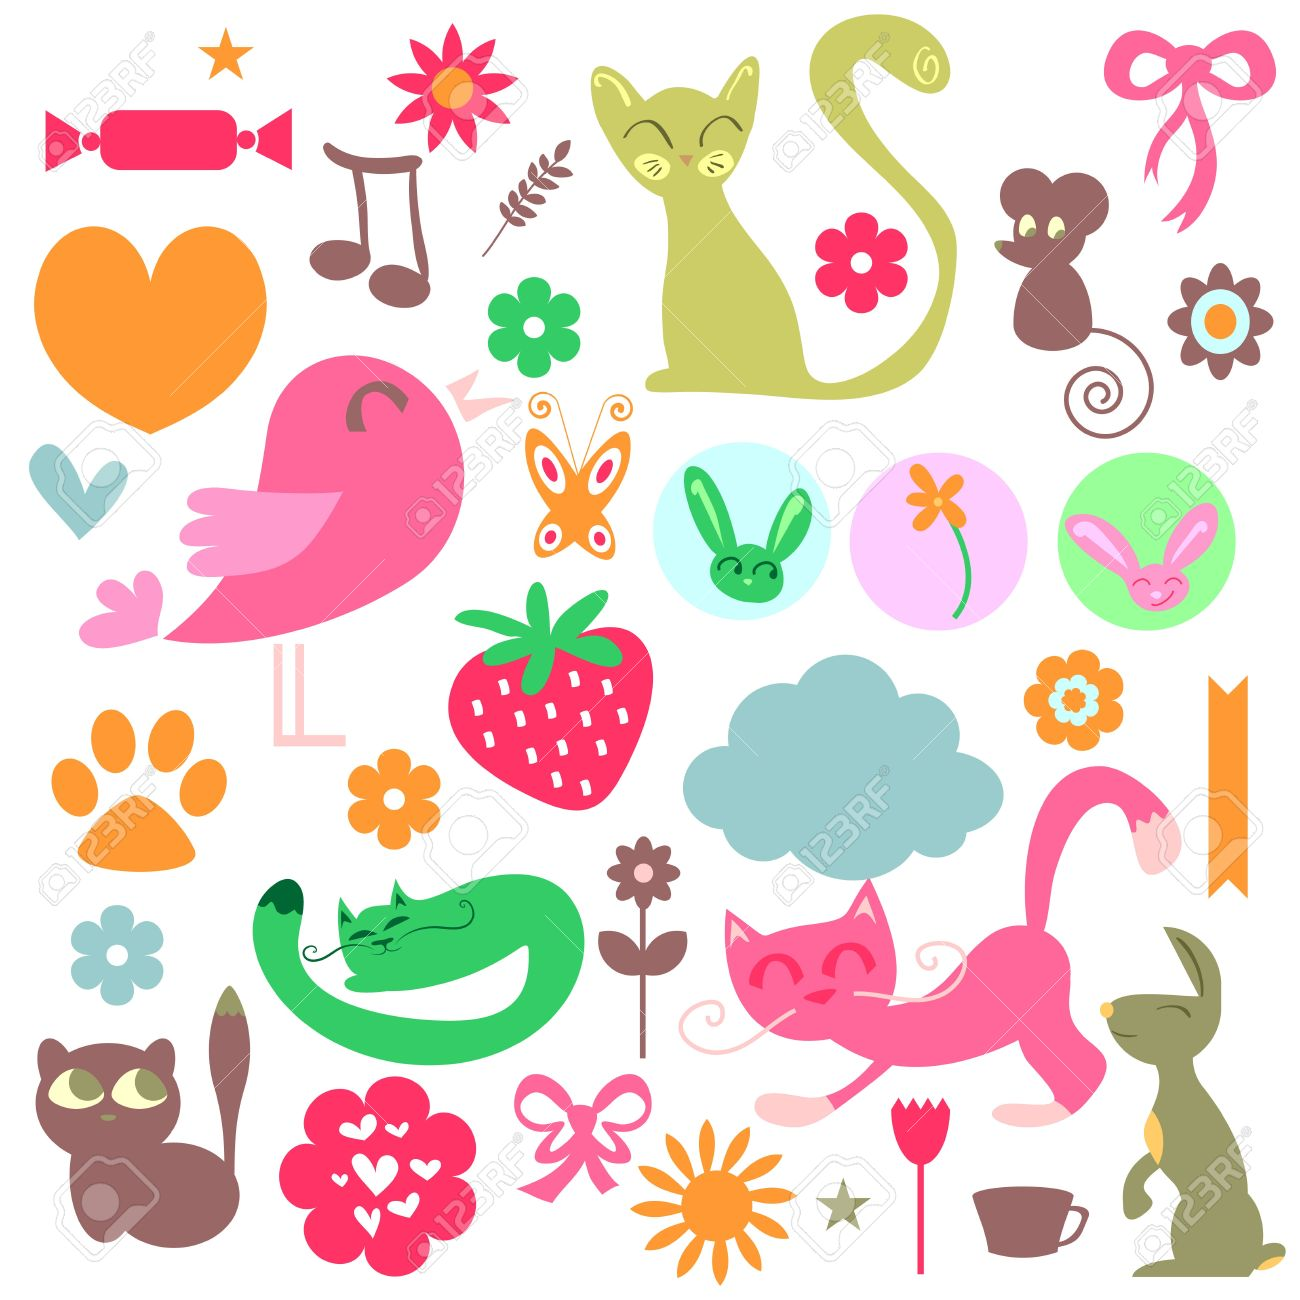 Babyish elements cute animals and objects set Stock Vector - 15638350